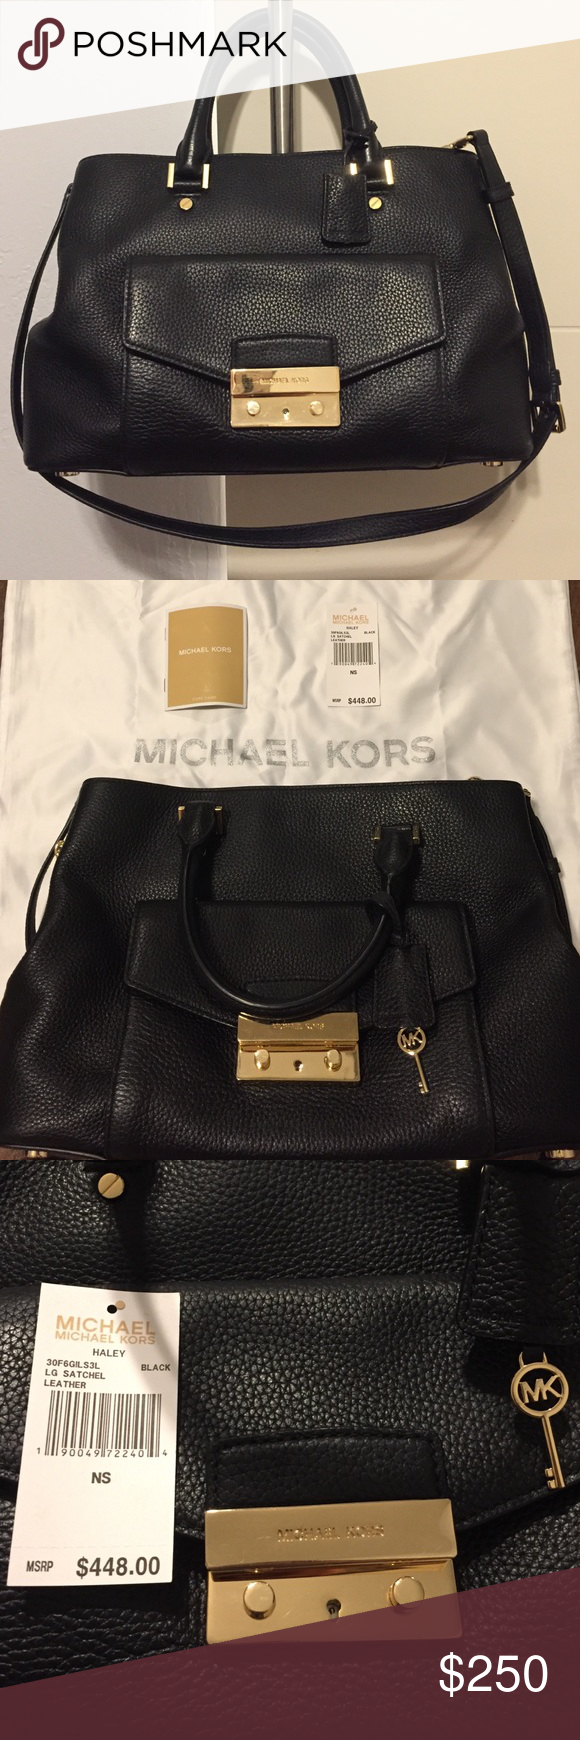 LNWT Michael Kors Haley LG Leather Satchel- Black This is a 100% authentic Michael Kors Haley LG Leather Satchel in black that was purchased new by me from the MK store. It is soft leather exterior & lined interior w/ 2 hand straps & an adjustment shoulder strap. Has 3 separate areas inside: the middle one zips closed & the other two have magnetic closure. Has 4 cell phone pockets & additional interior zipper pocket. Exterior pocket locks & key hides in charm. No wear or stains but normal…